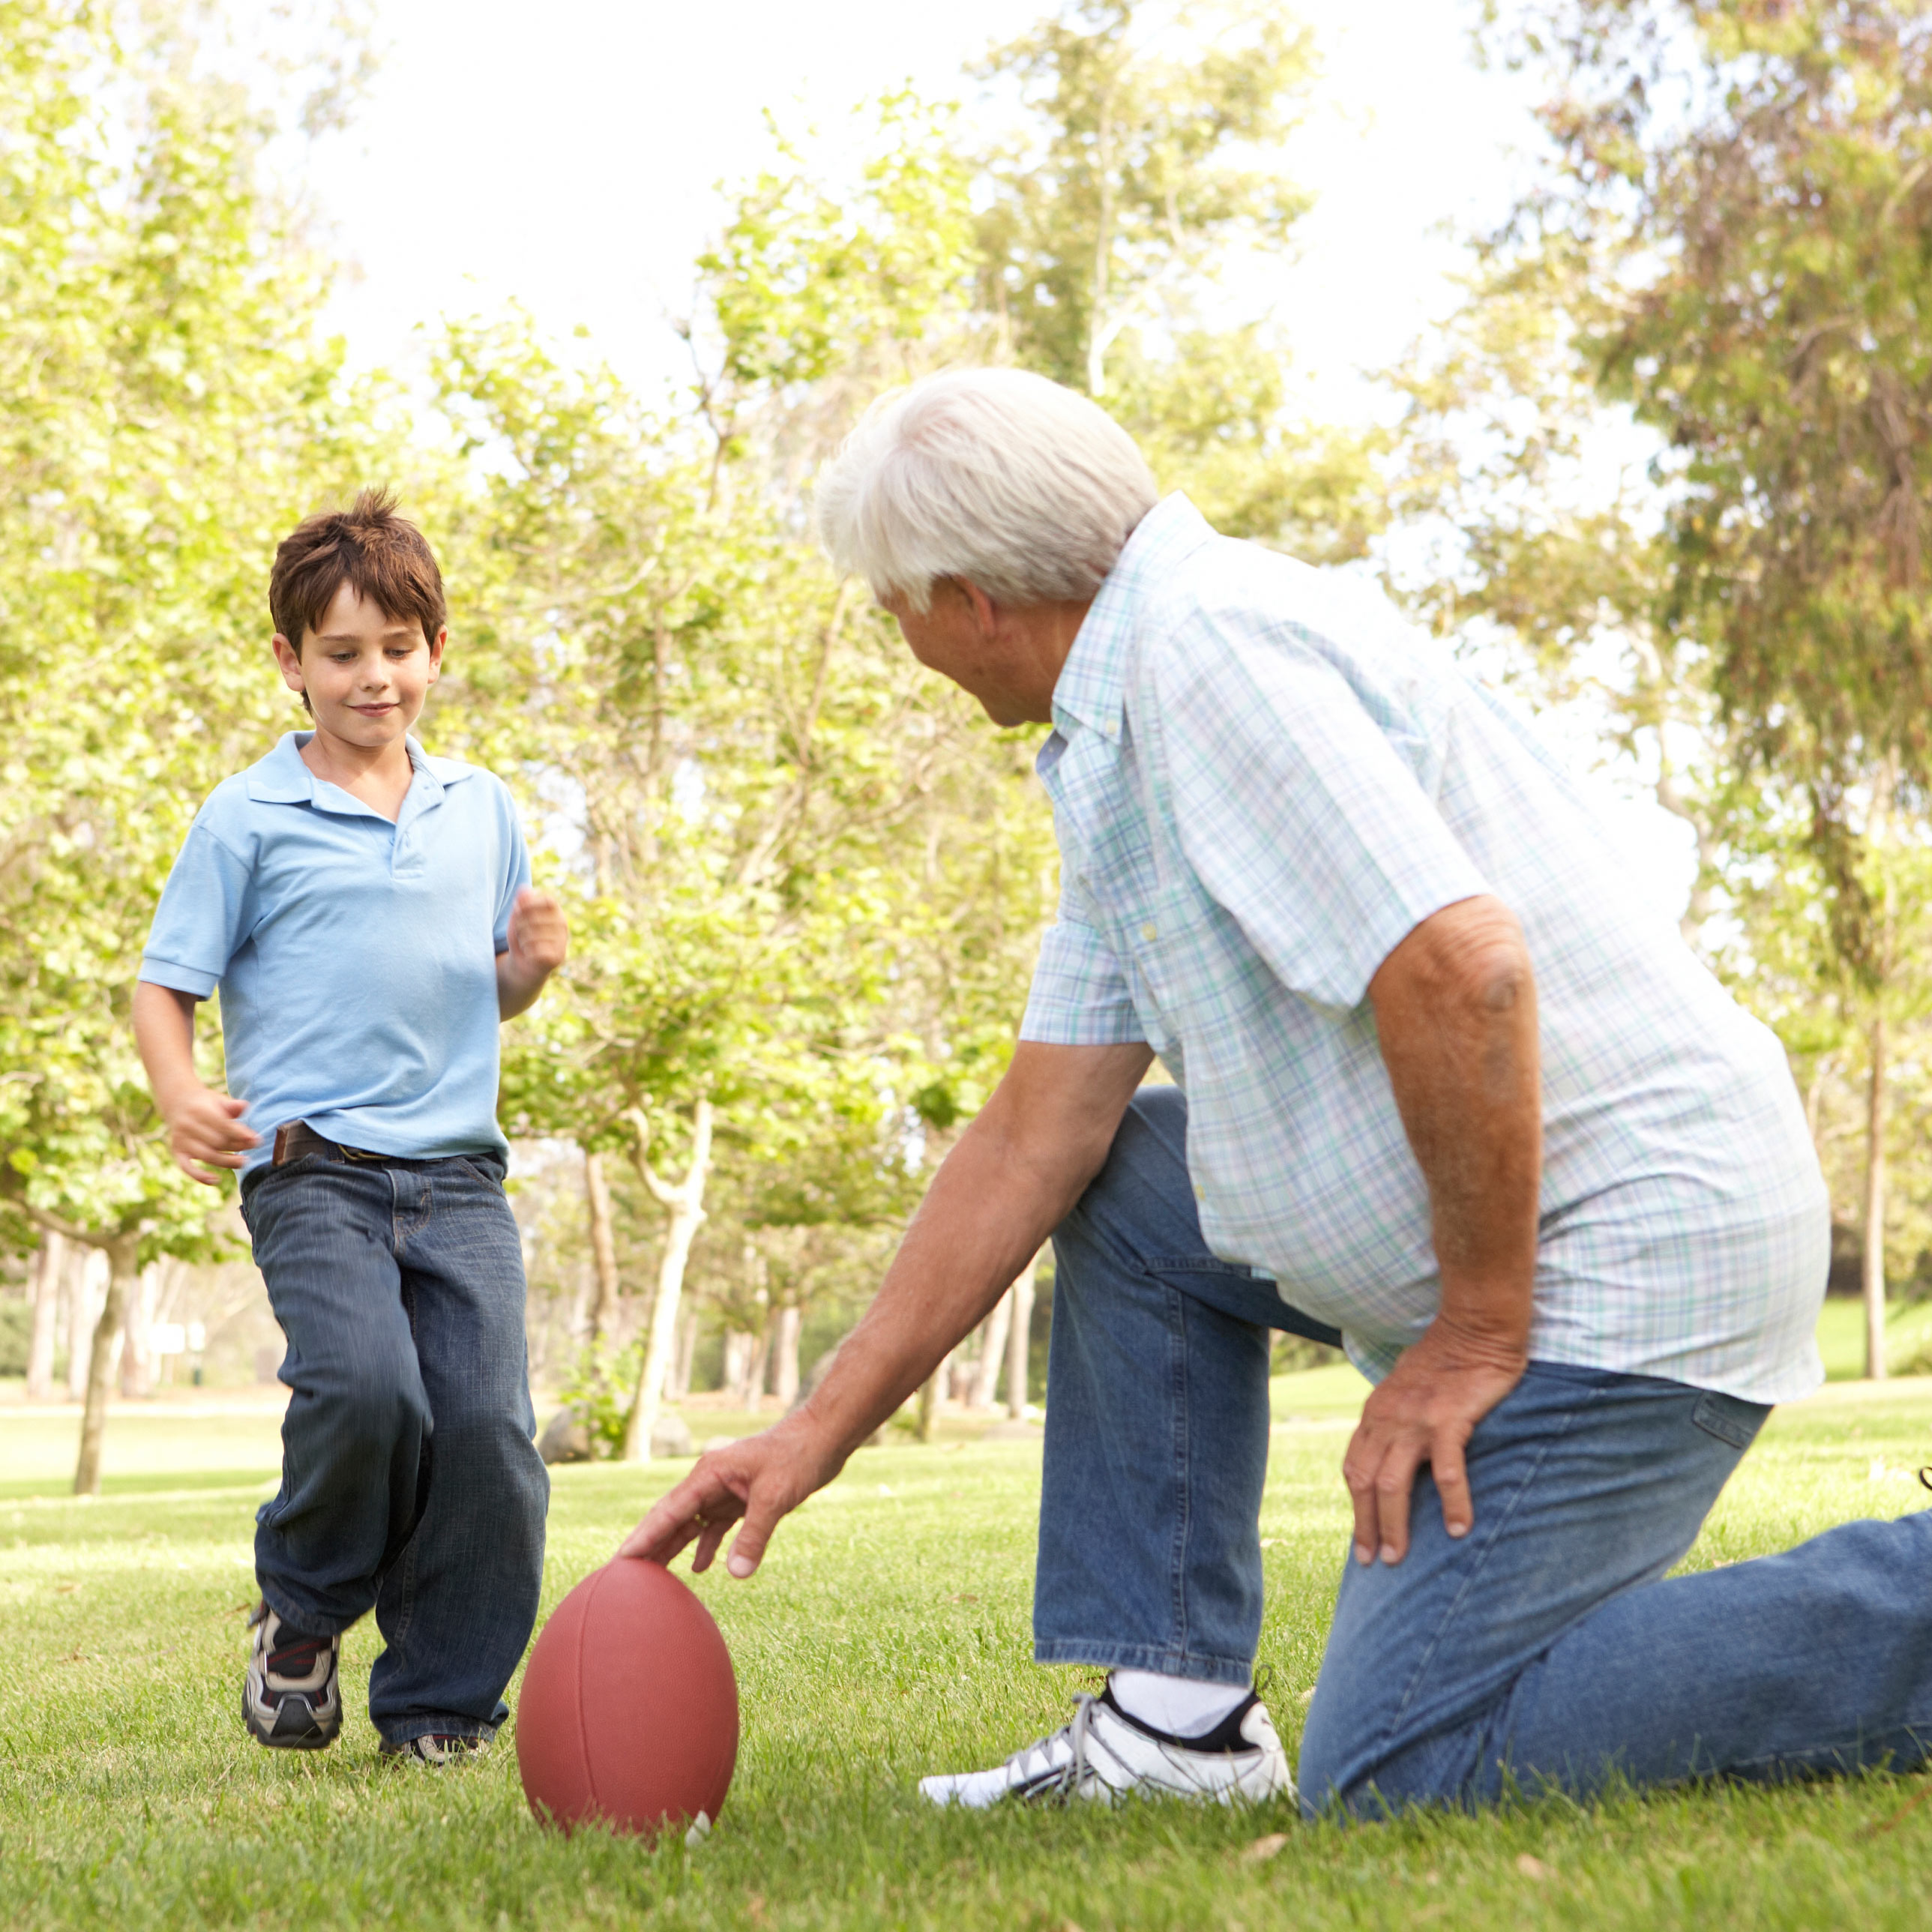 Grandfather setting up football for grandson to kick.